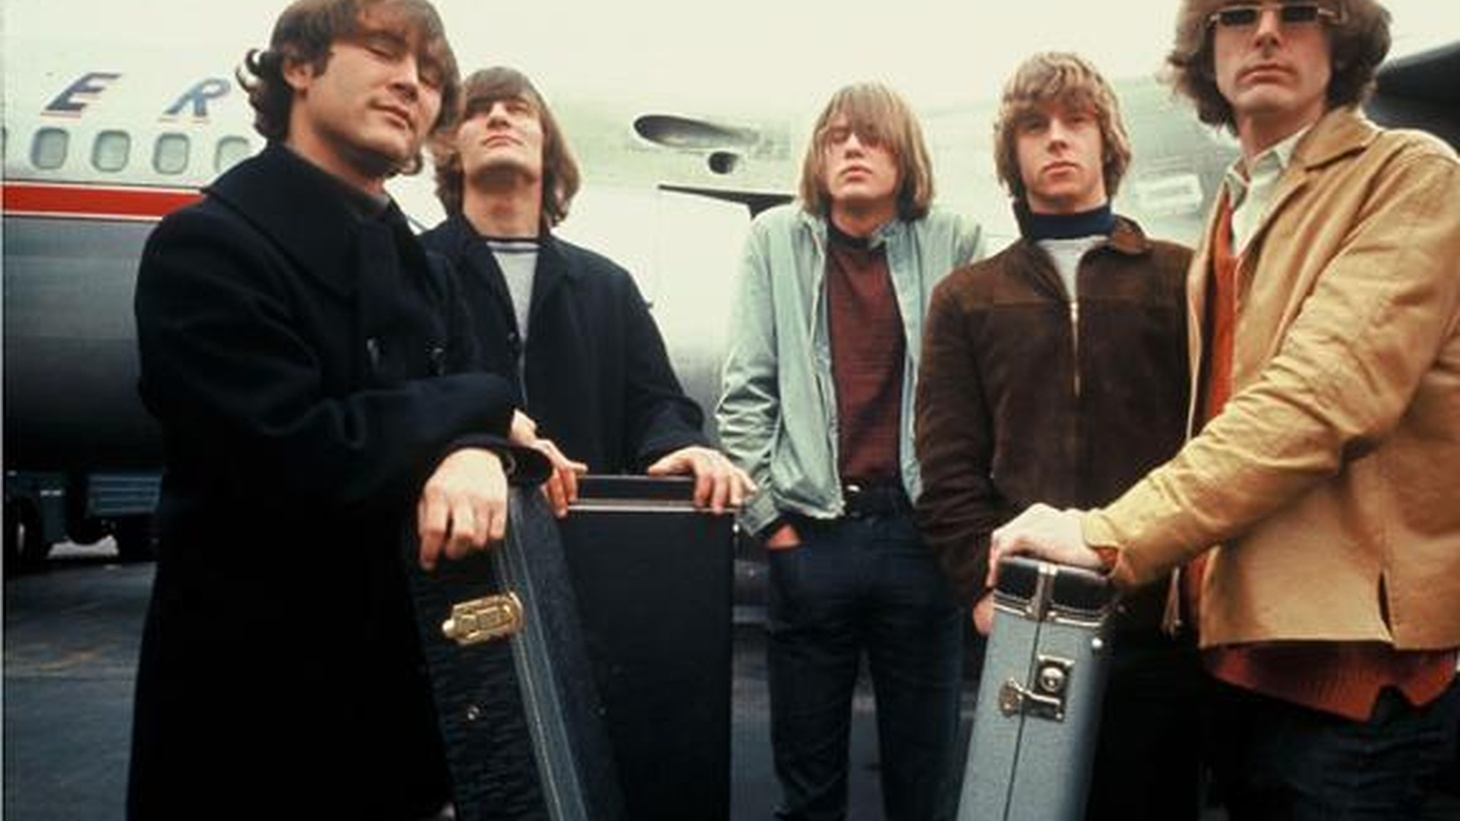 Part Two of this two-hour documentary on The Byrds covers 1968 to 1972: the groundbreaking country-rock years. (Airs 2-3pm, preempts Marketplace and Bookworm; Part One airs 1-2pm)